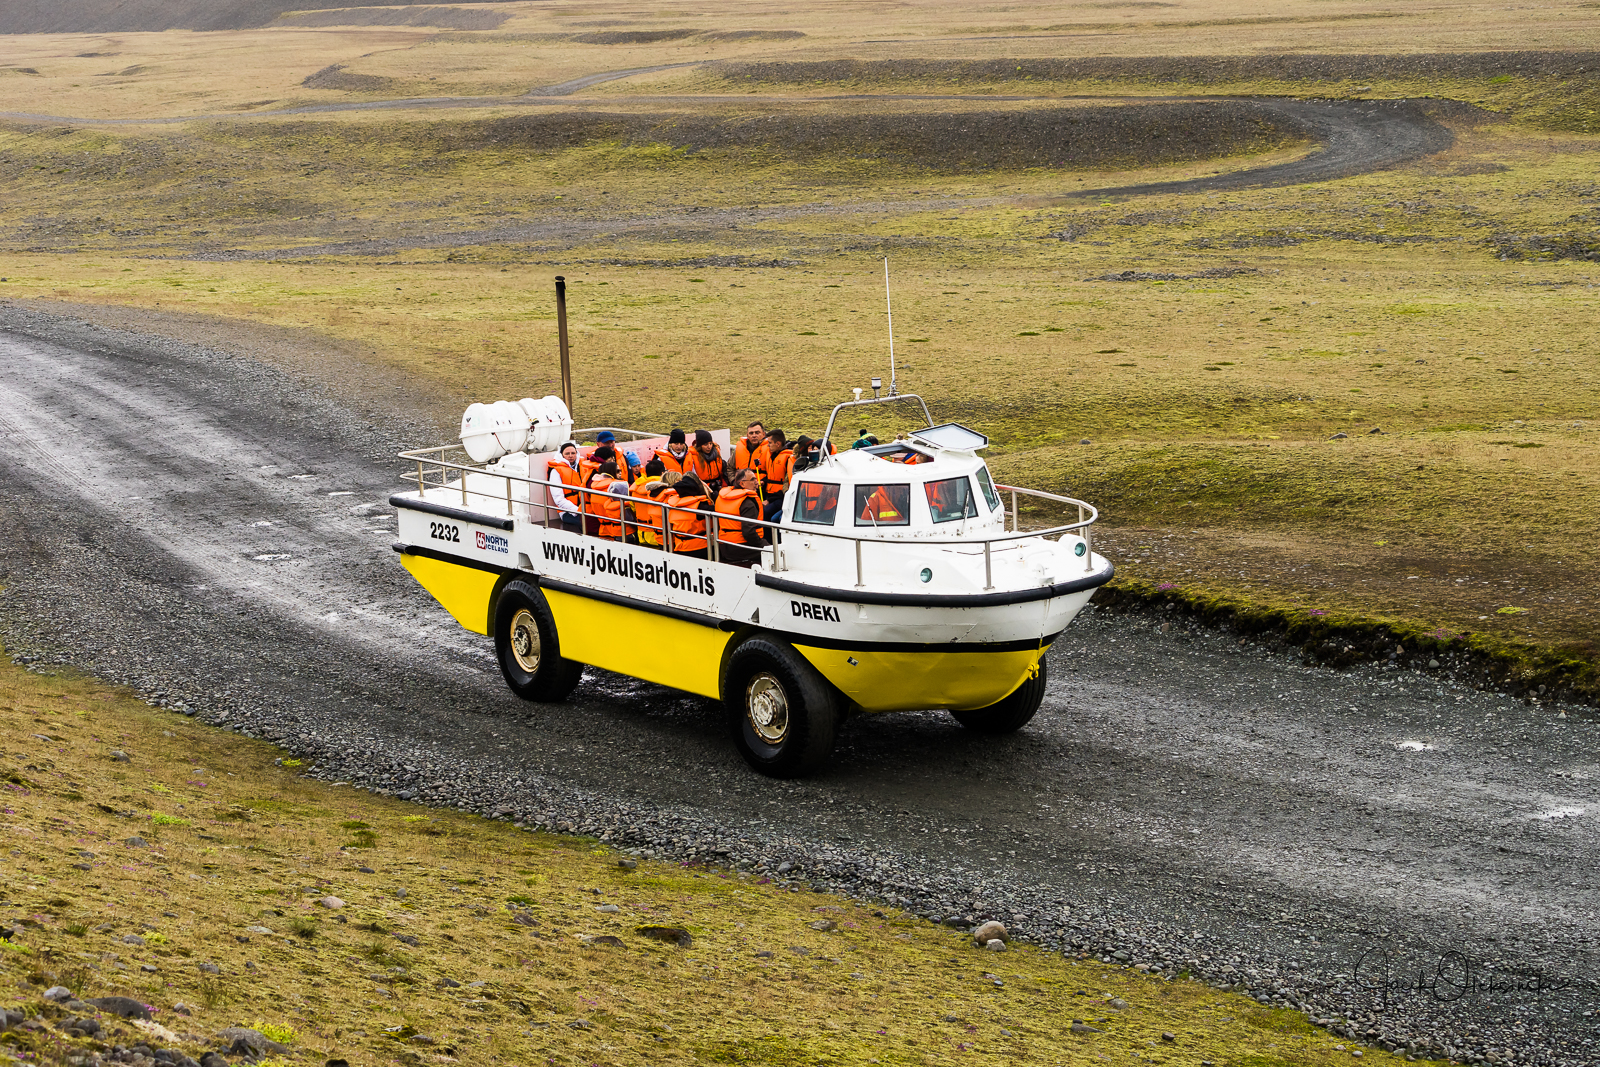 Tourists on the way with an amphibianboat